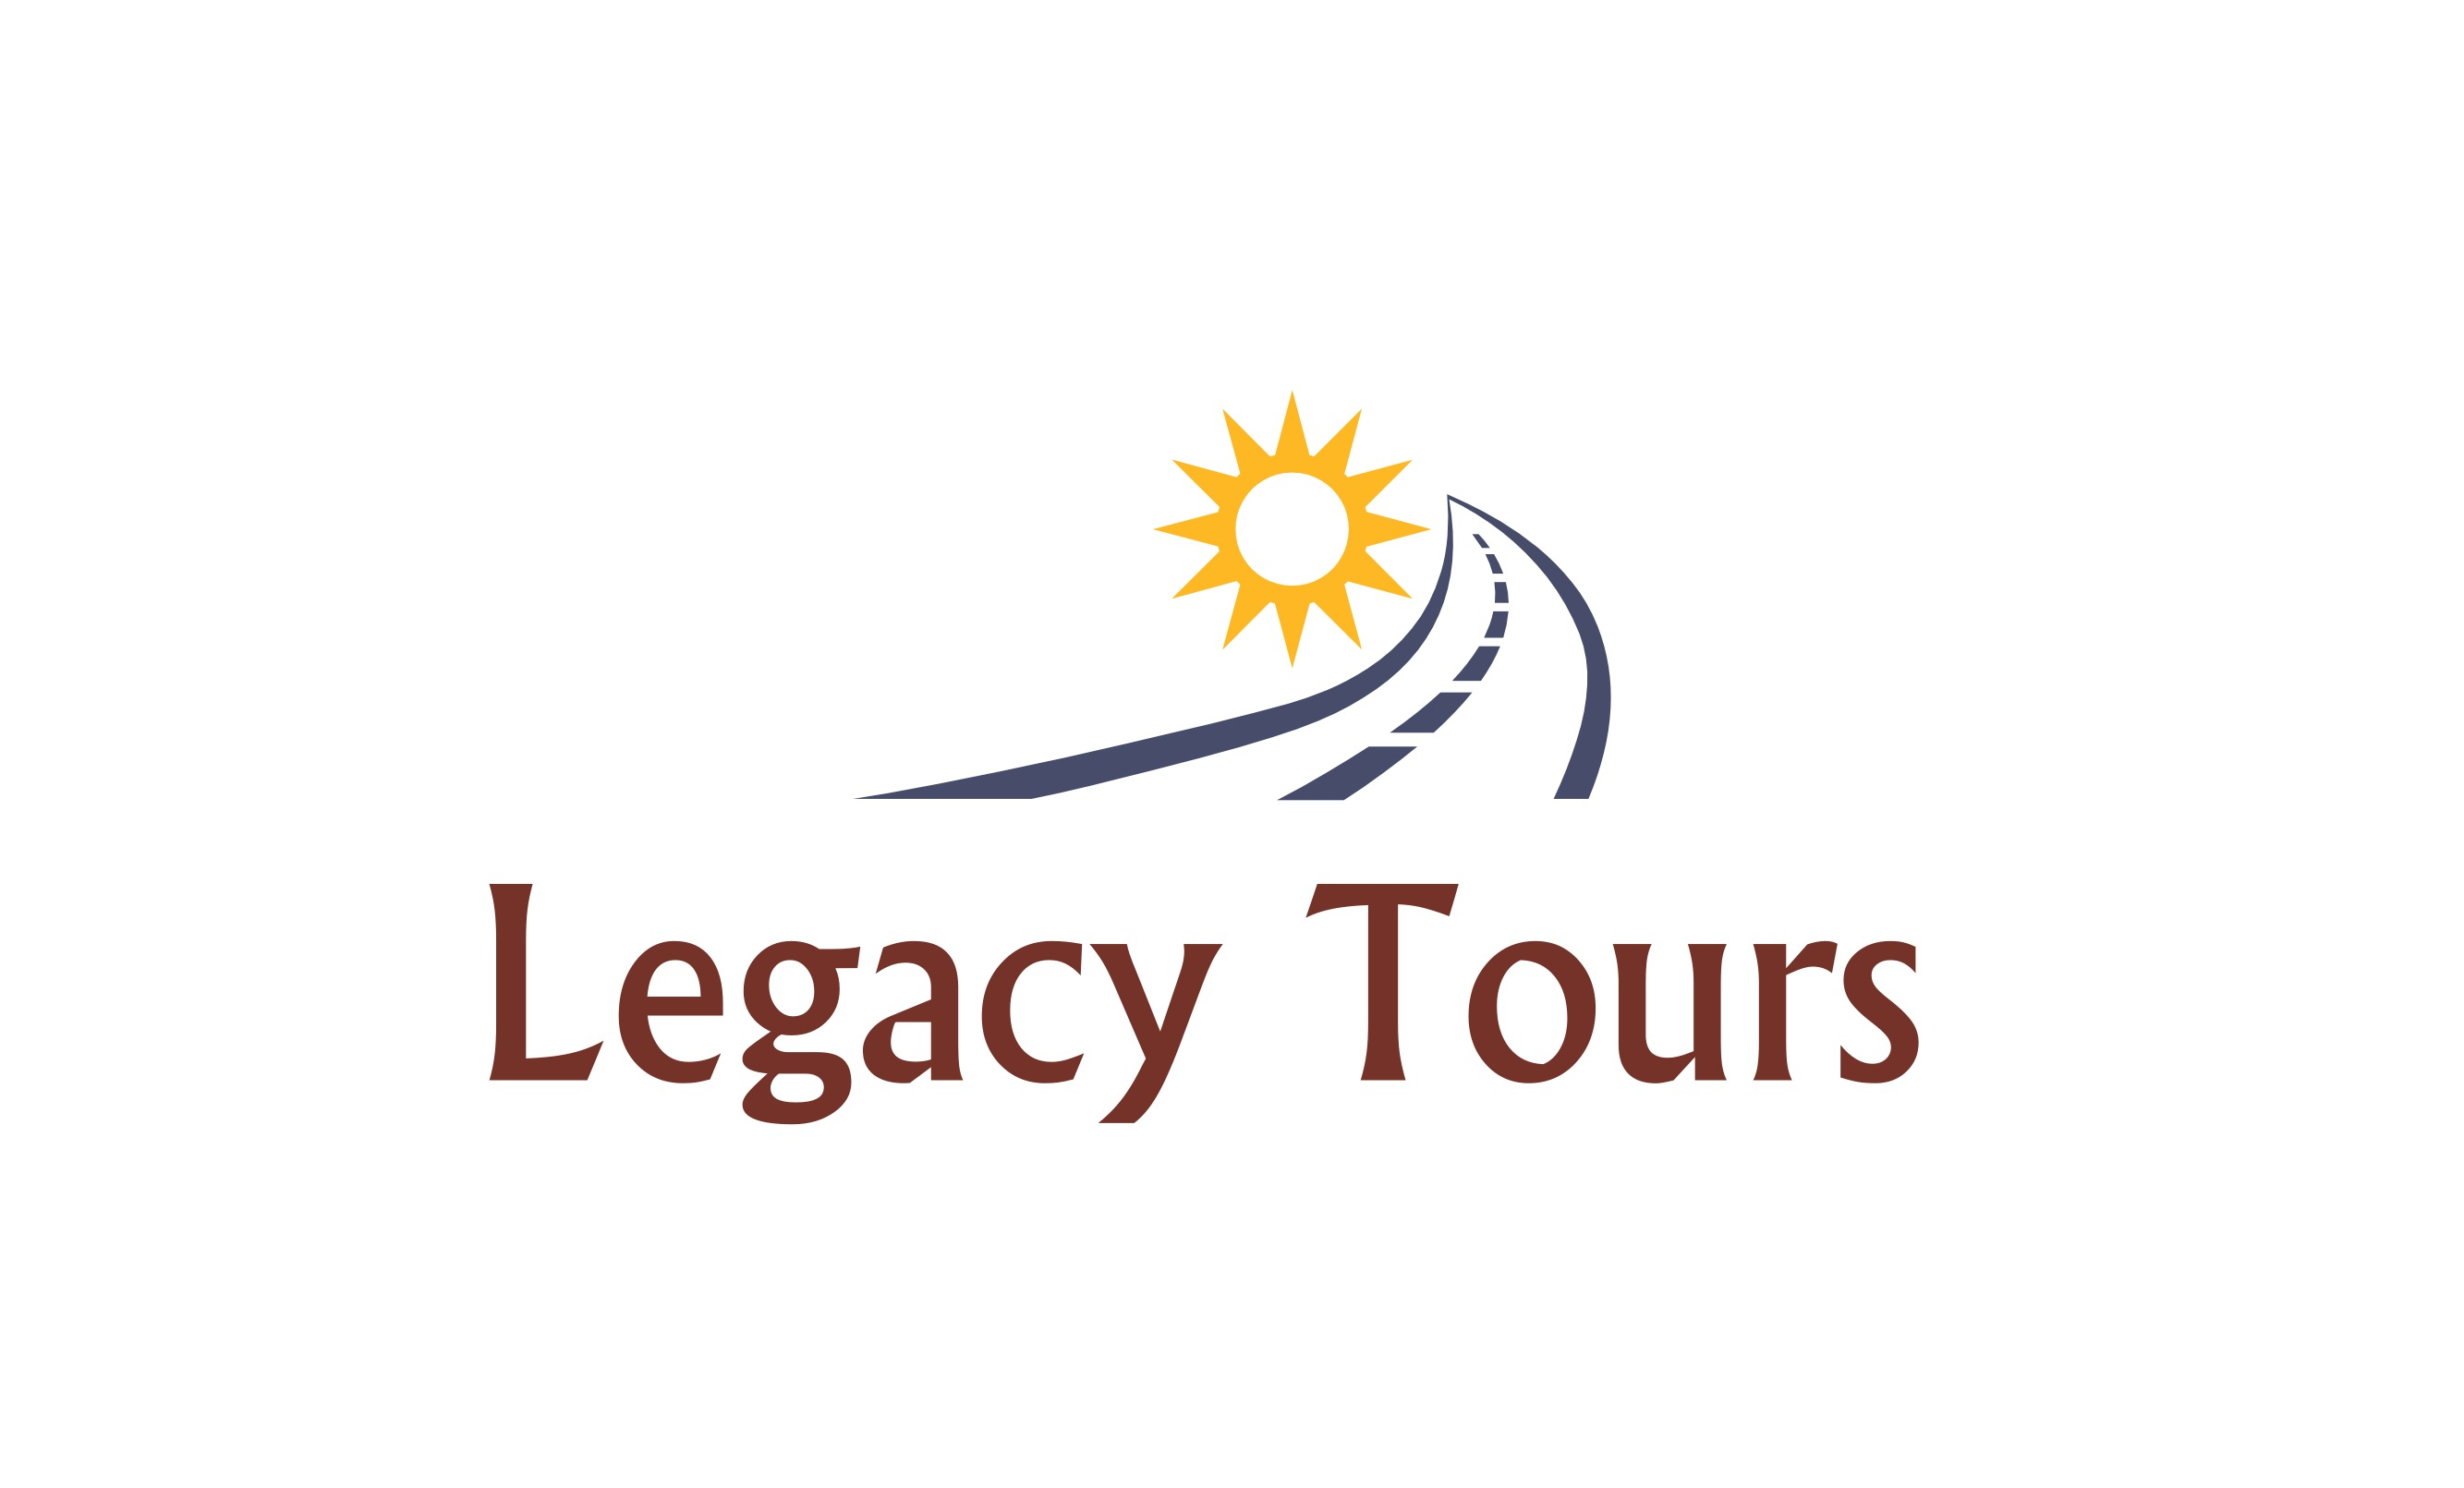 Legacy Tours Terms and Conditions